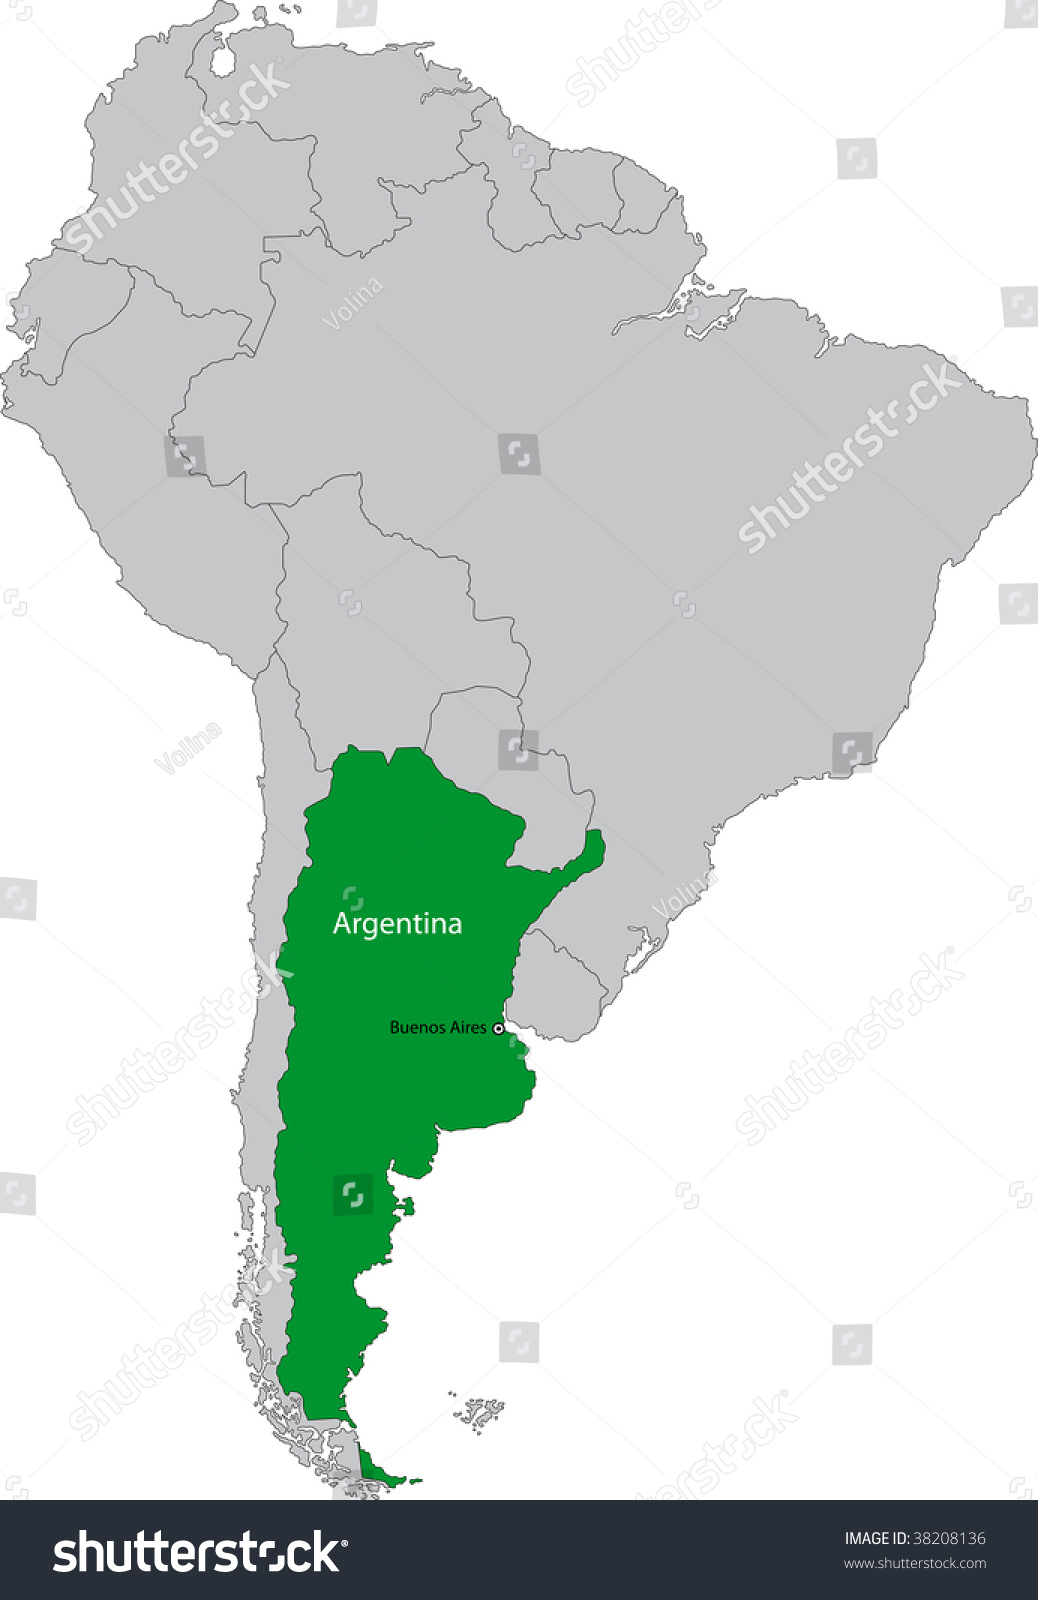 Location Argentina On South America Continent Stock Illustration - Argentina map continent